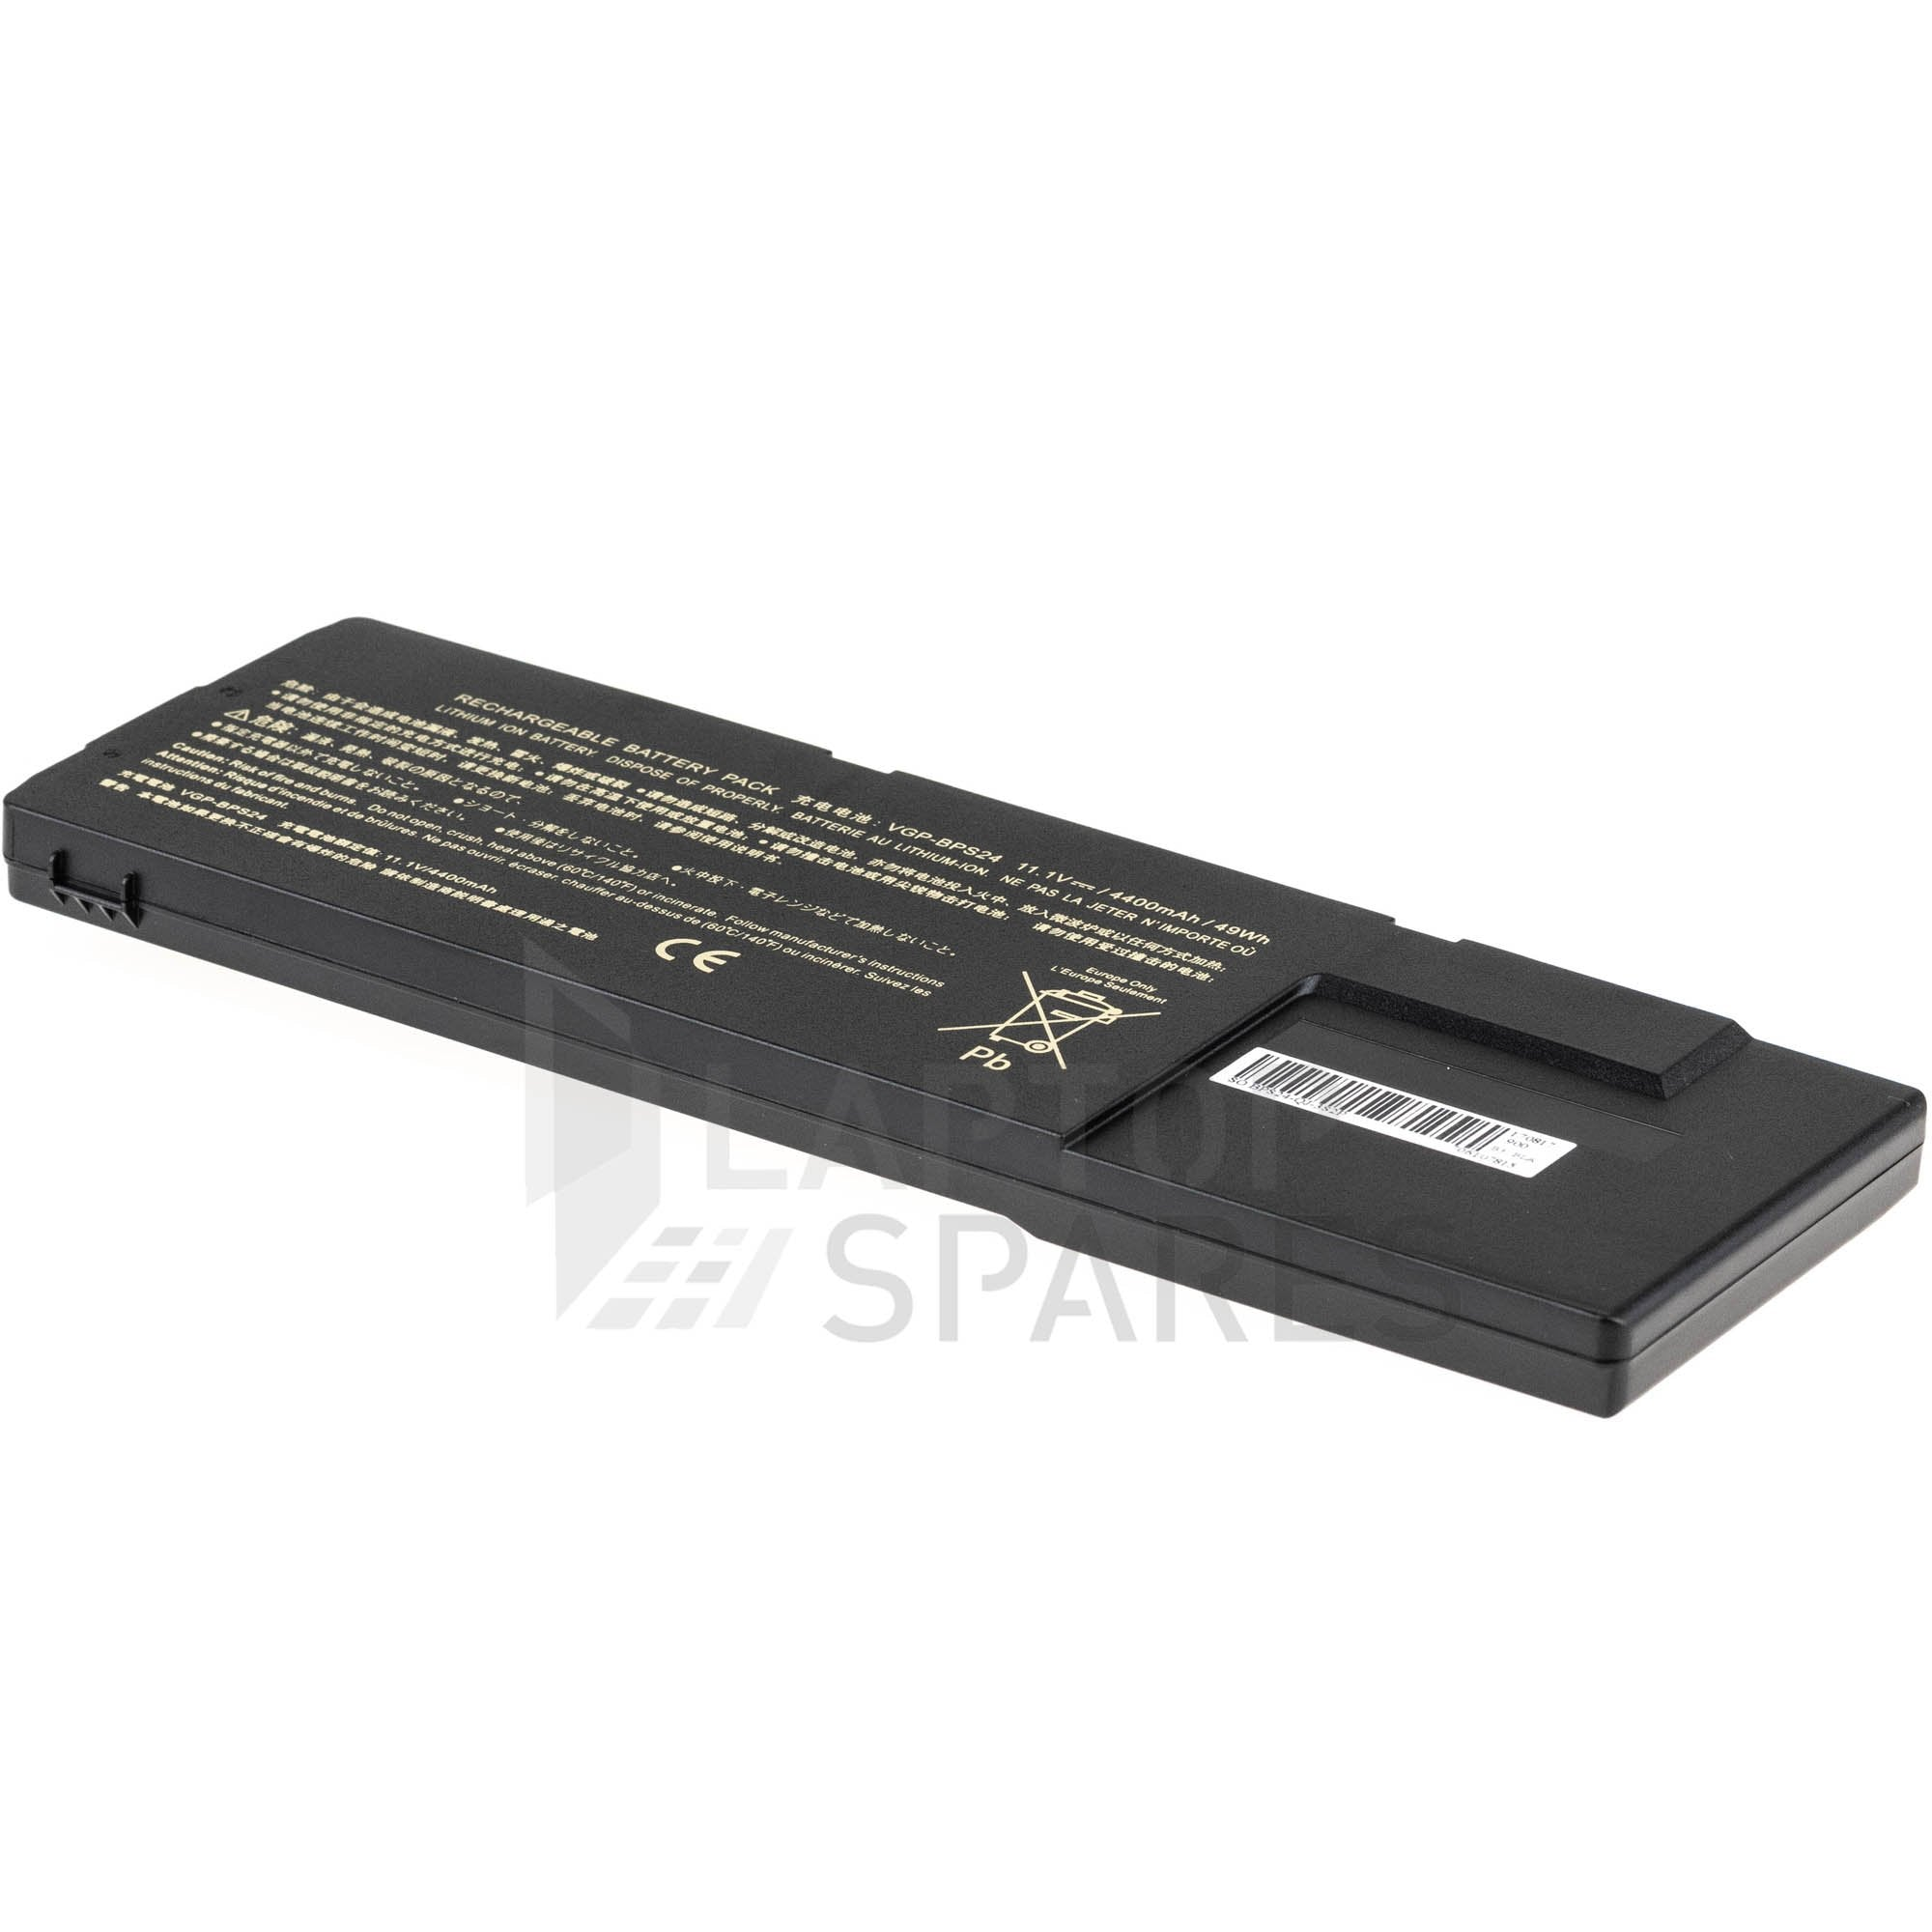 Sony Vaio VPC SB36FN/B SB36FW/B 4400mAh 6 Cell Battery